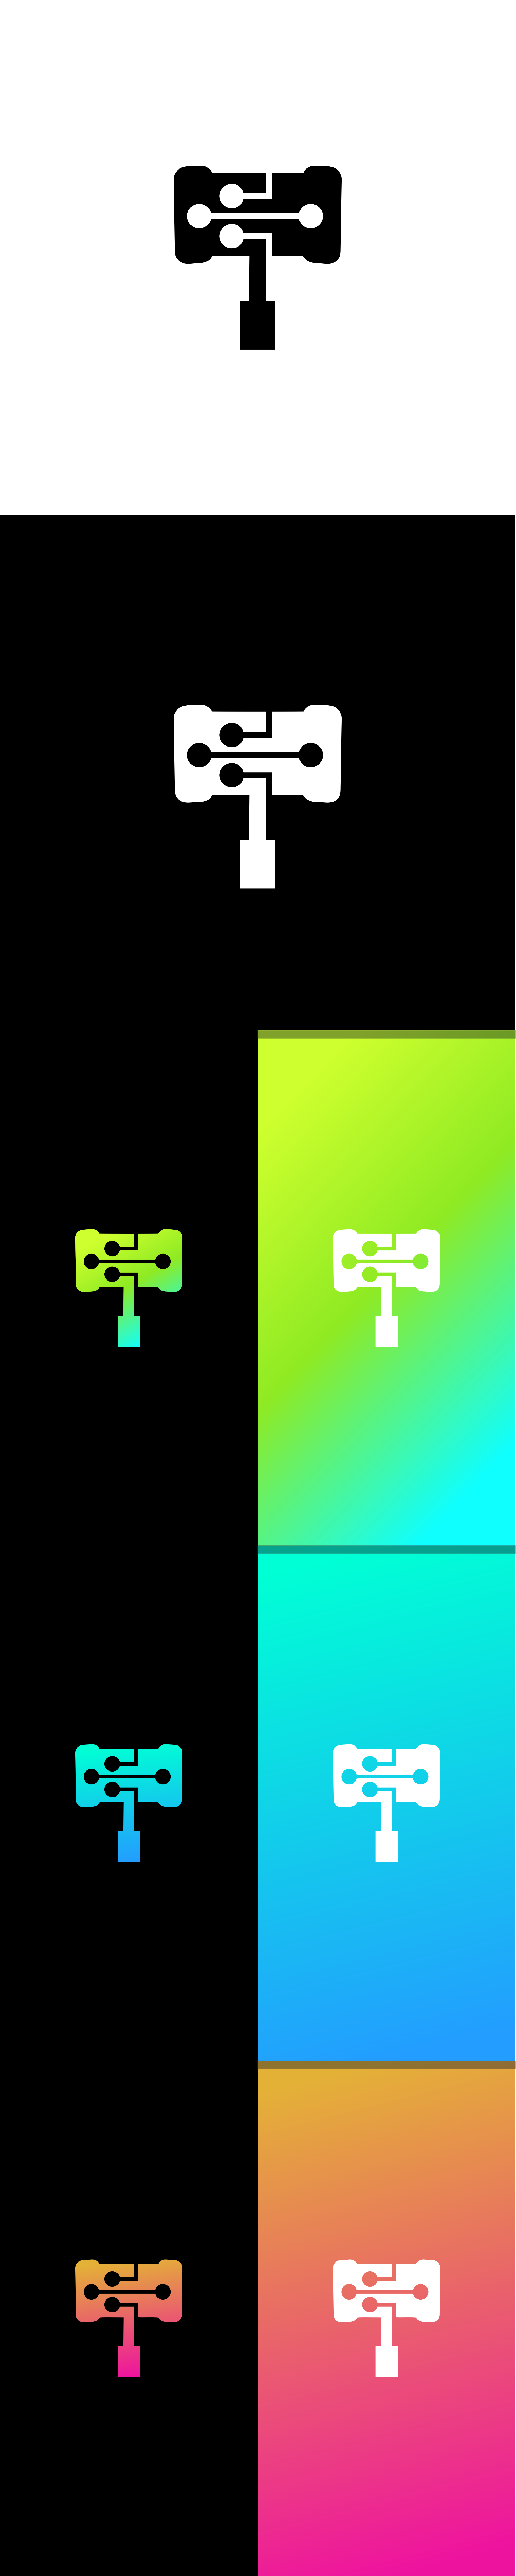 Design the logo for our neural network compression tool: Hammer!